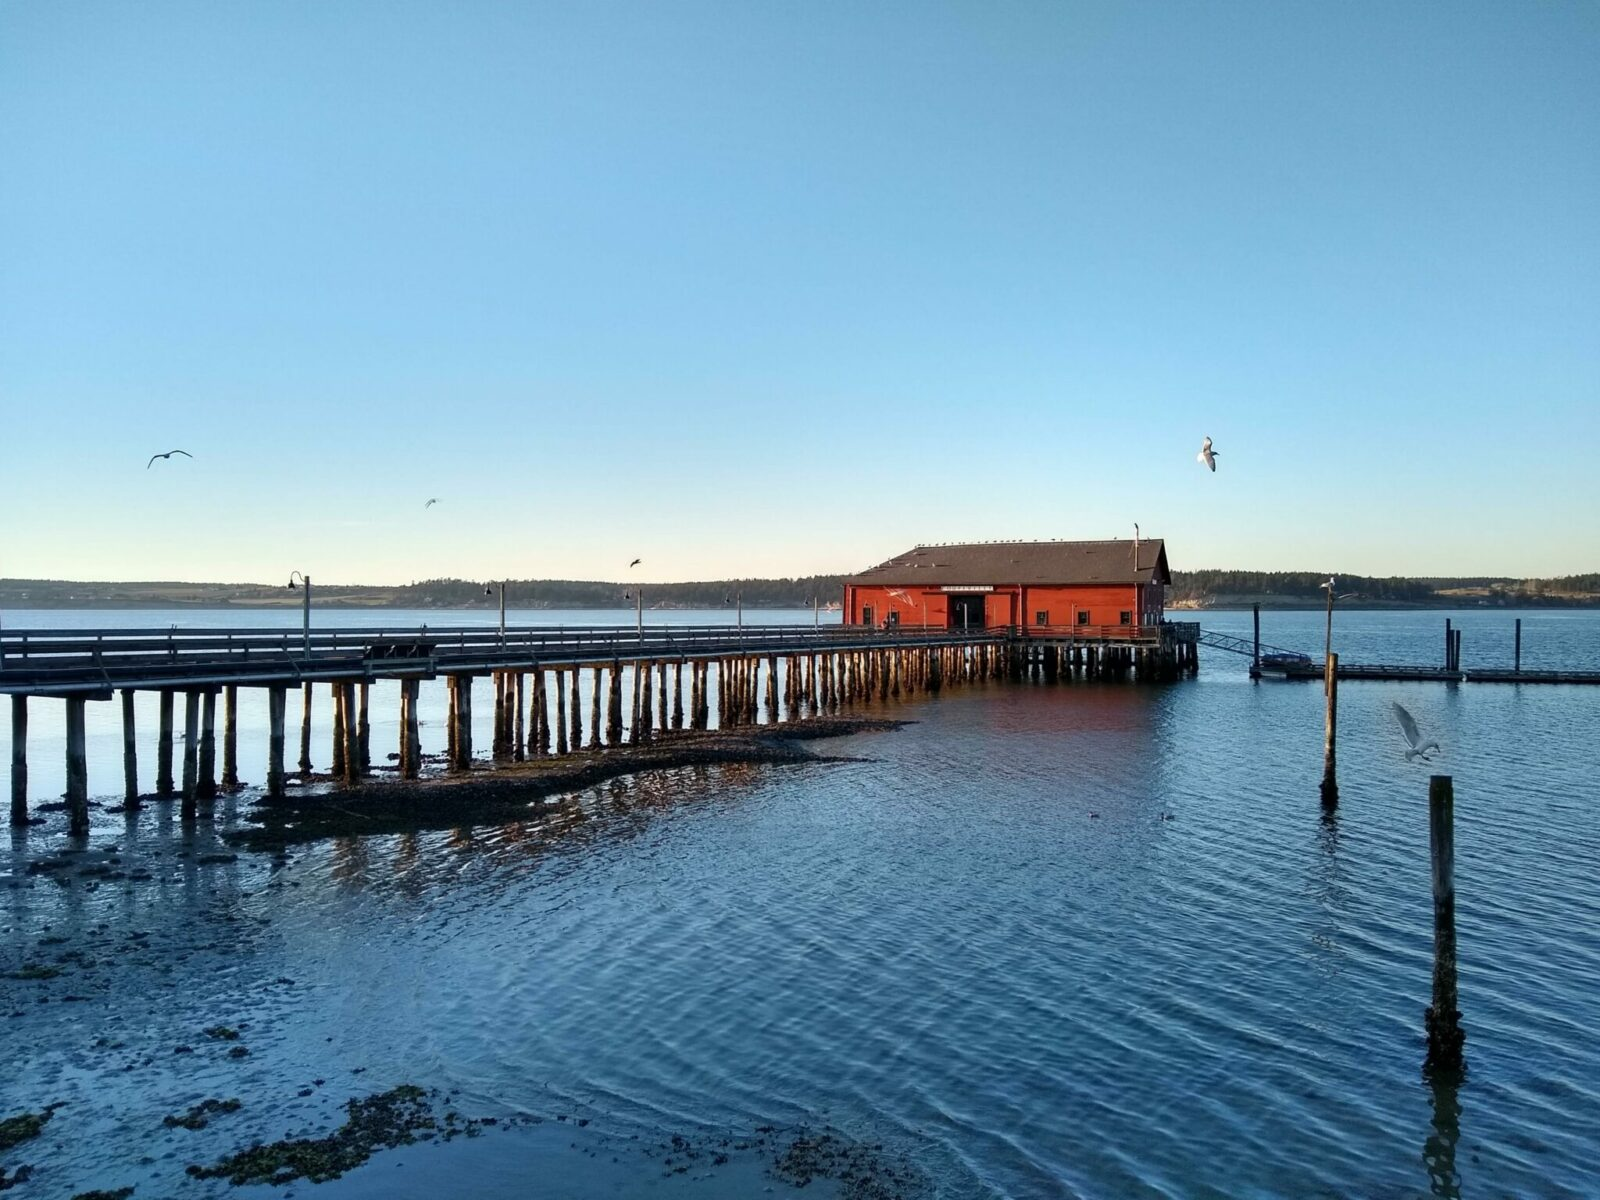 A long wooden pier with a red historic building at the end of it at sunset in Coupeville on Whidbey Island